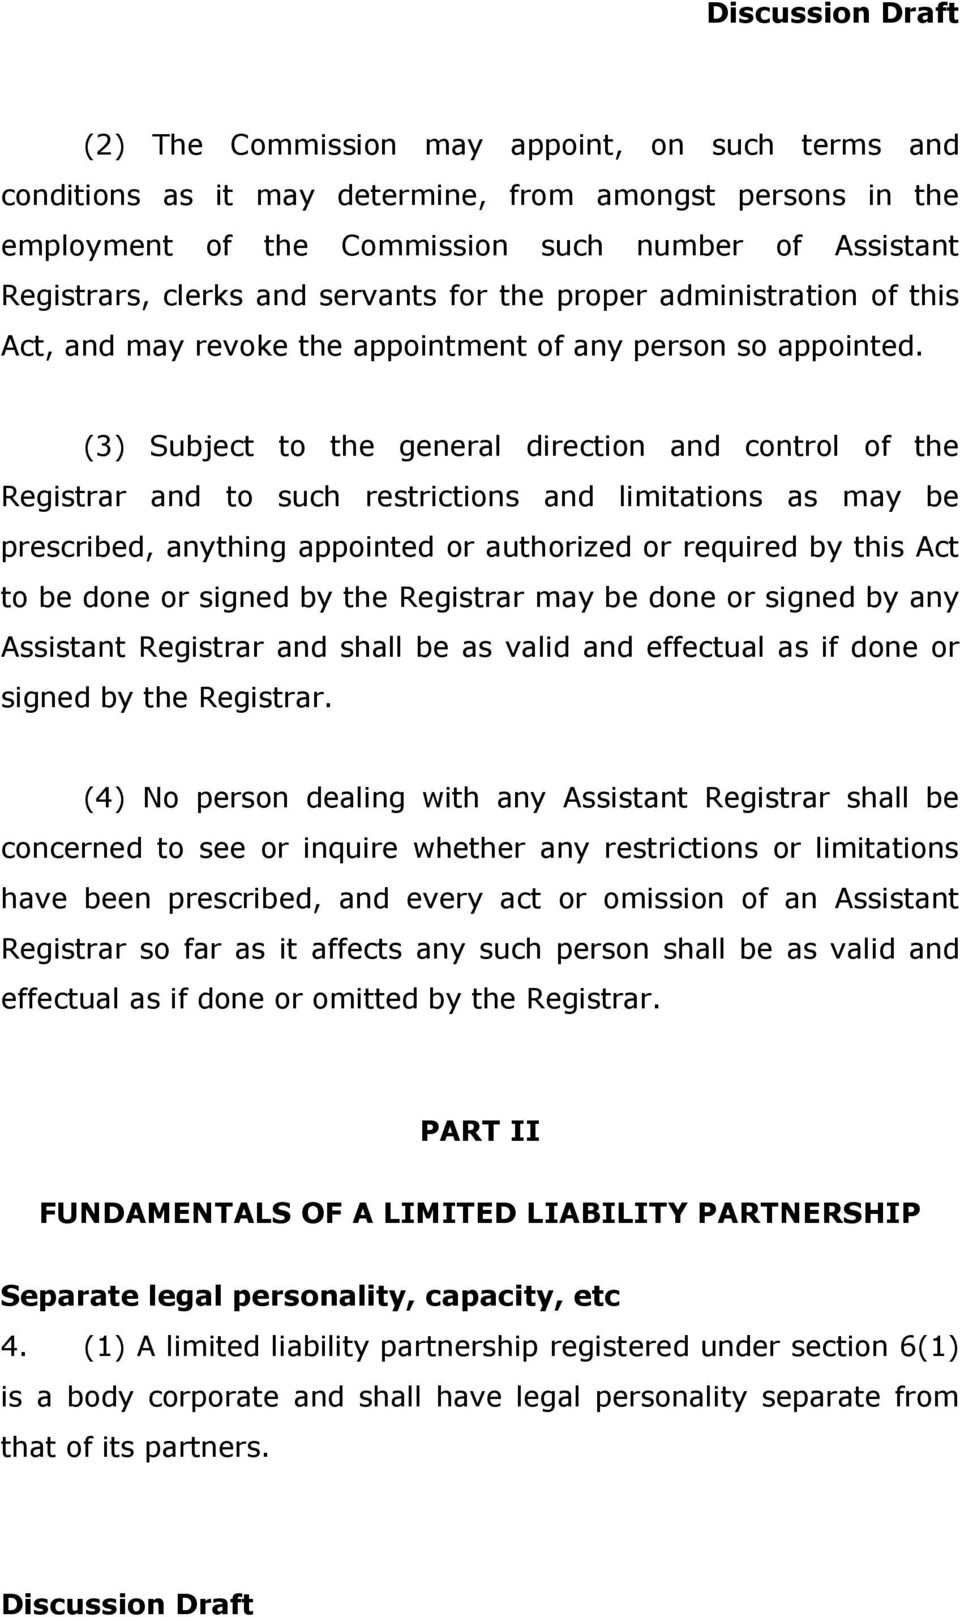 (3) Subject to the general direction and control of the Registrar and to such restrictions and limitations as may be prescribed, anything appointed or authorized or required by this Act to be done or